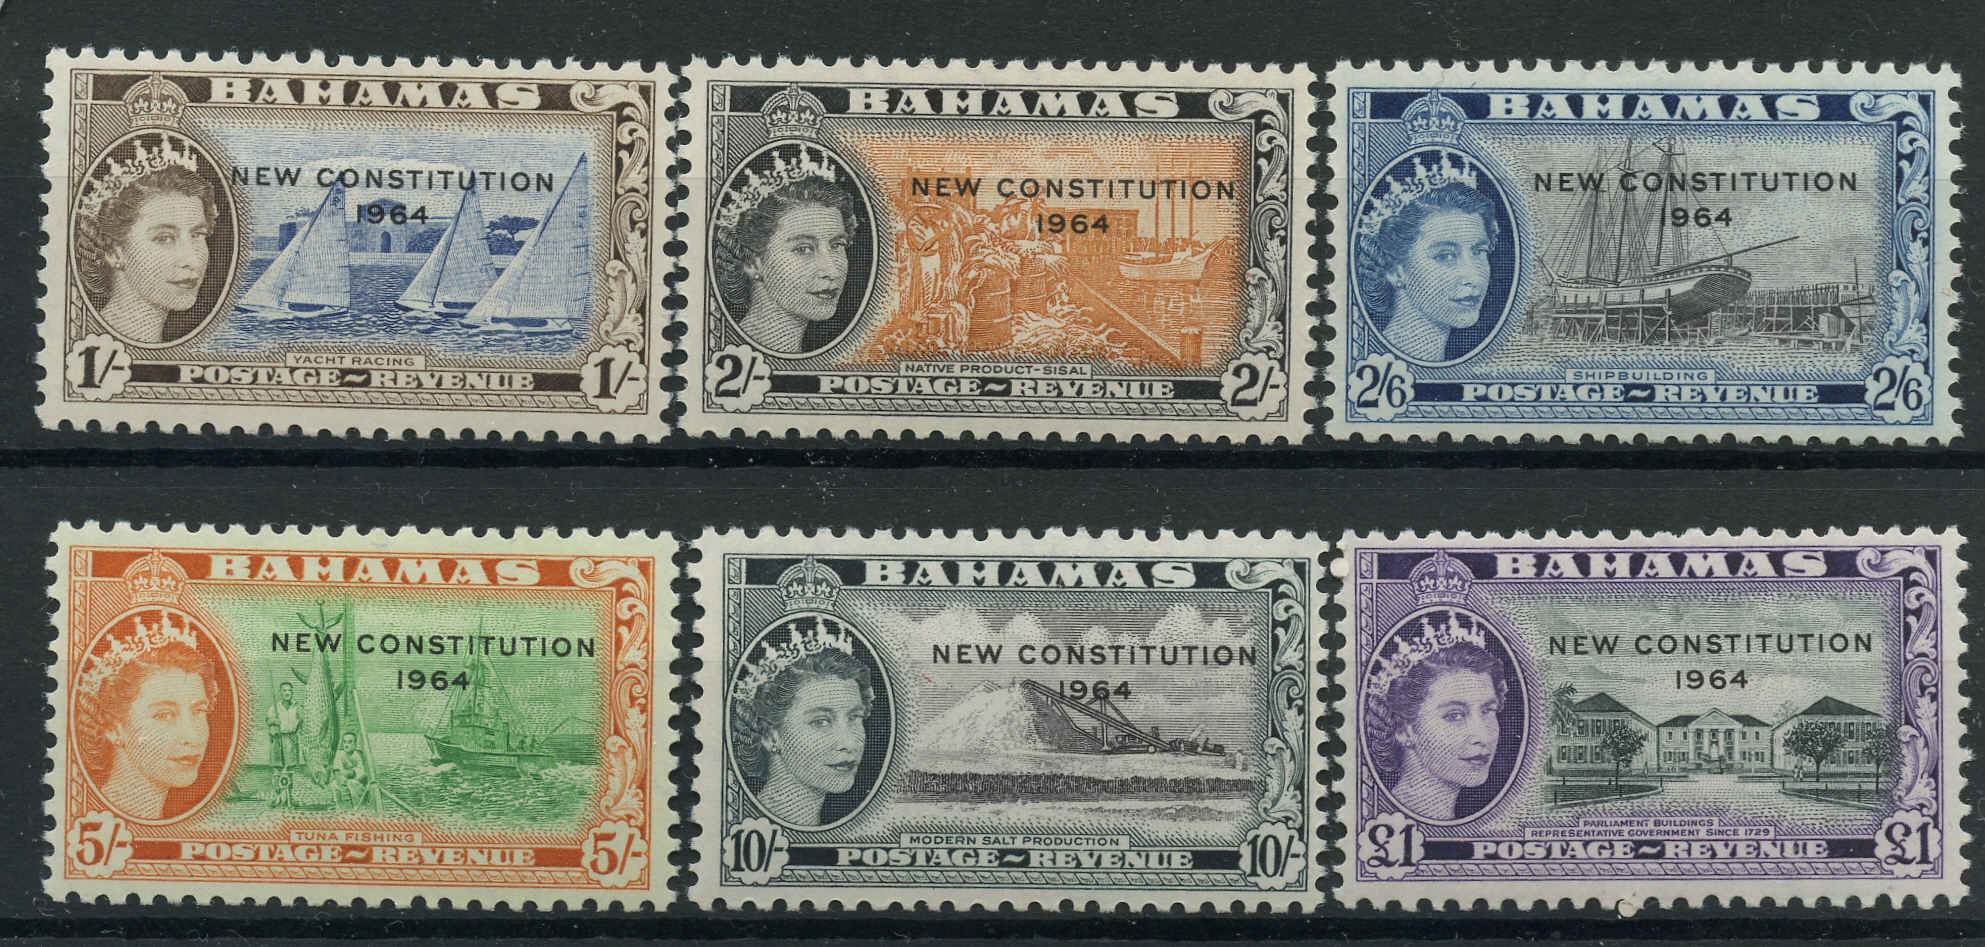 Bahamas Stamp, Scott #195-200, F+, MH